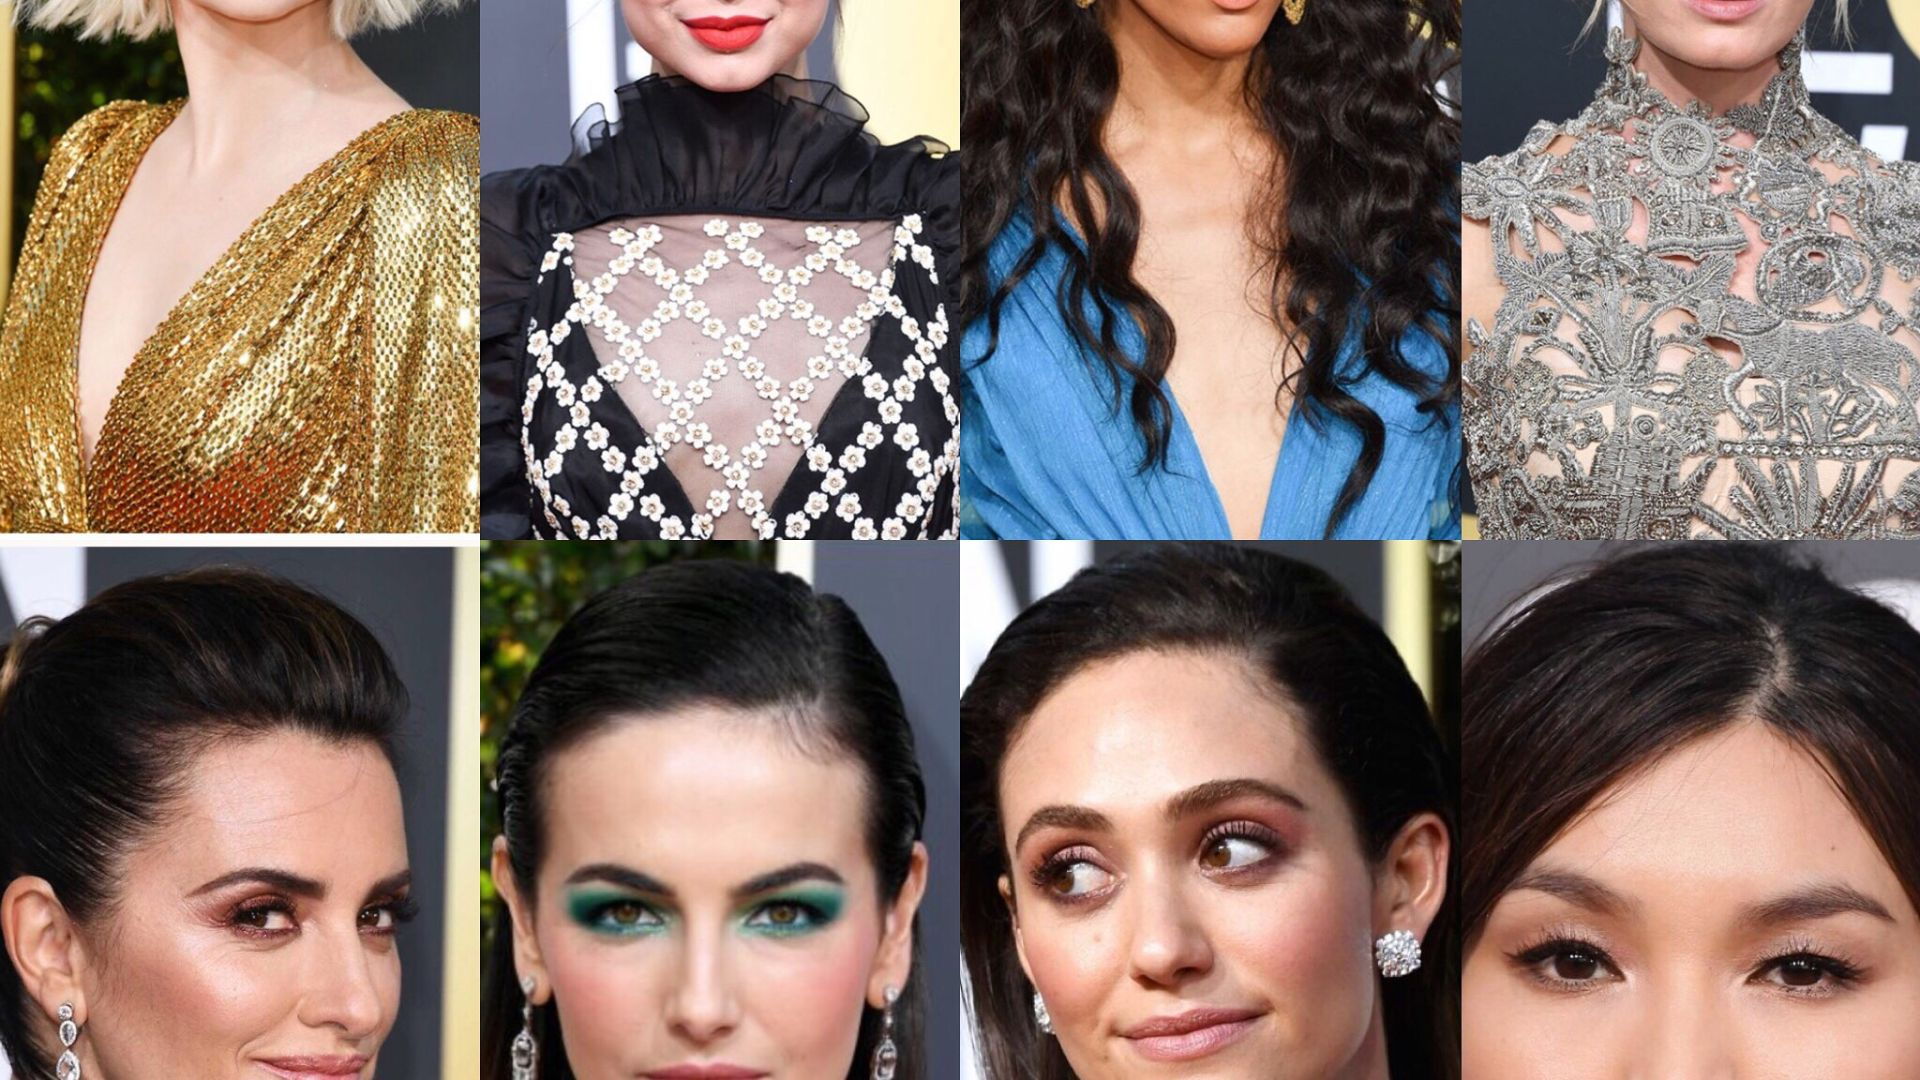 Beauty Trends 2019 as seen from the Golden Globes – Danielle Paquin